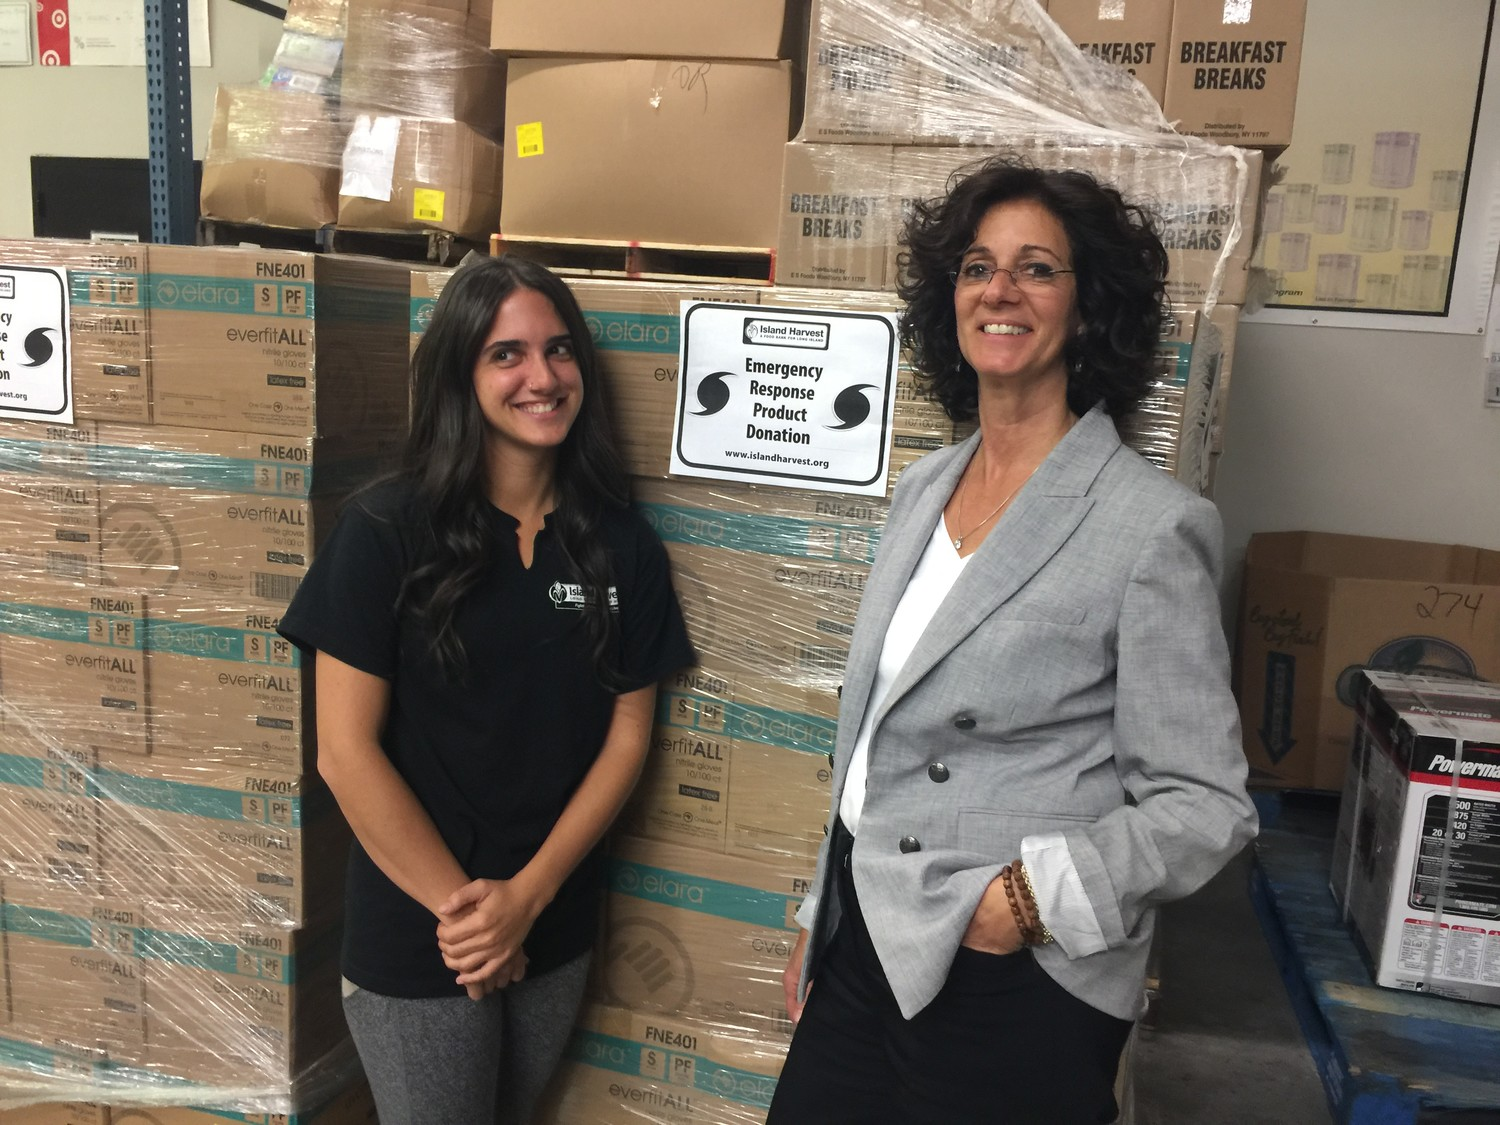 Rebecca Dresner, left, flew to Puerto Rico on Monday to help distribute food collected by the Island Harvest Food Bank. Her mother, Randi Shubin Dresner, president and CEO of the hunger-relief organization, said that Island Harvest had collected more than half a million pounds of nonperishable food, bottled water and cleaning supplies since early September to aid hurricane-stricken areas.